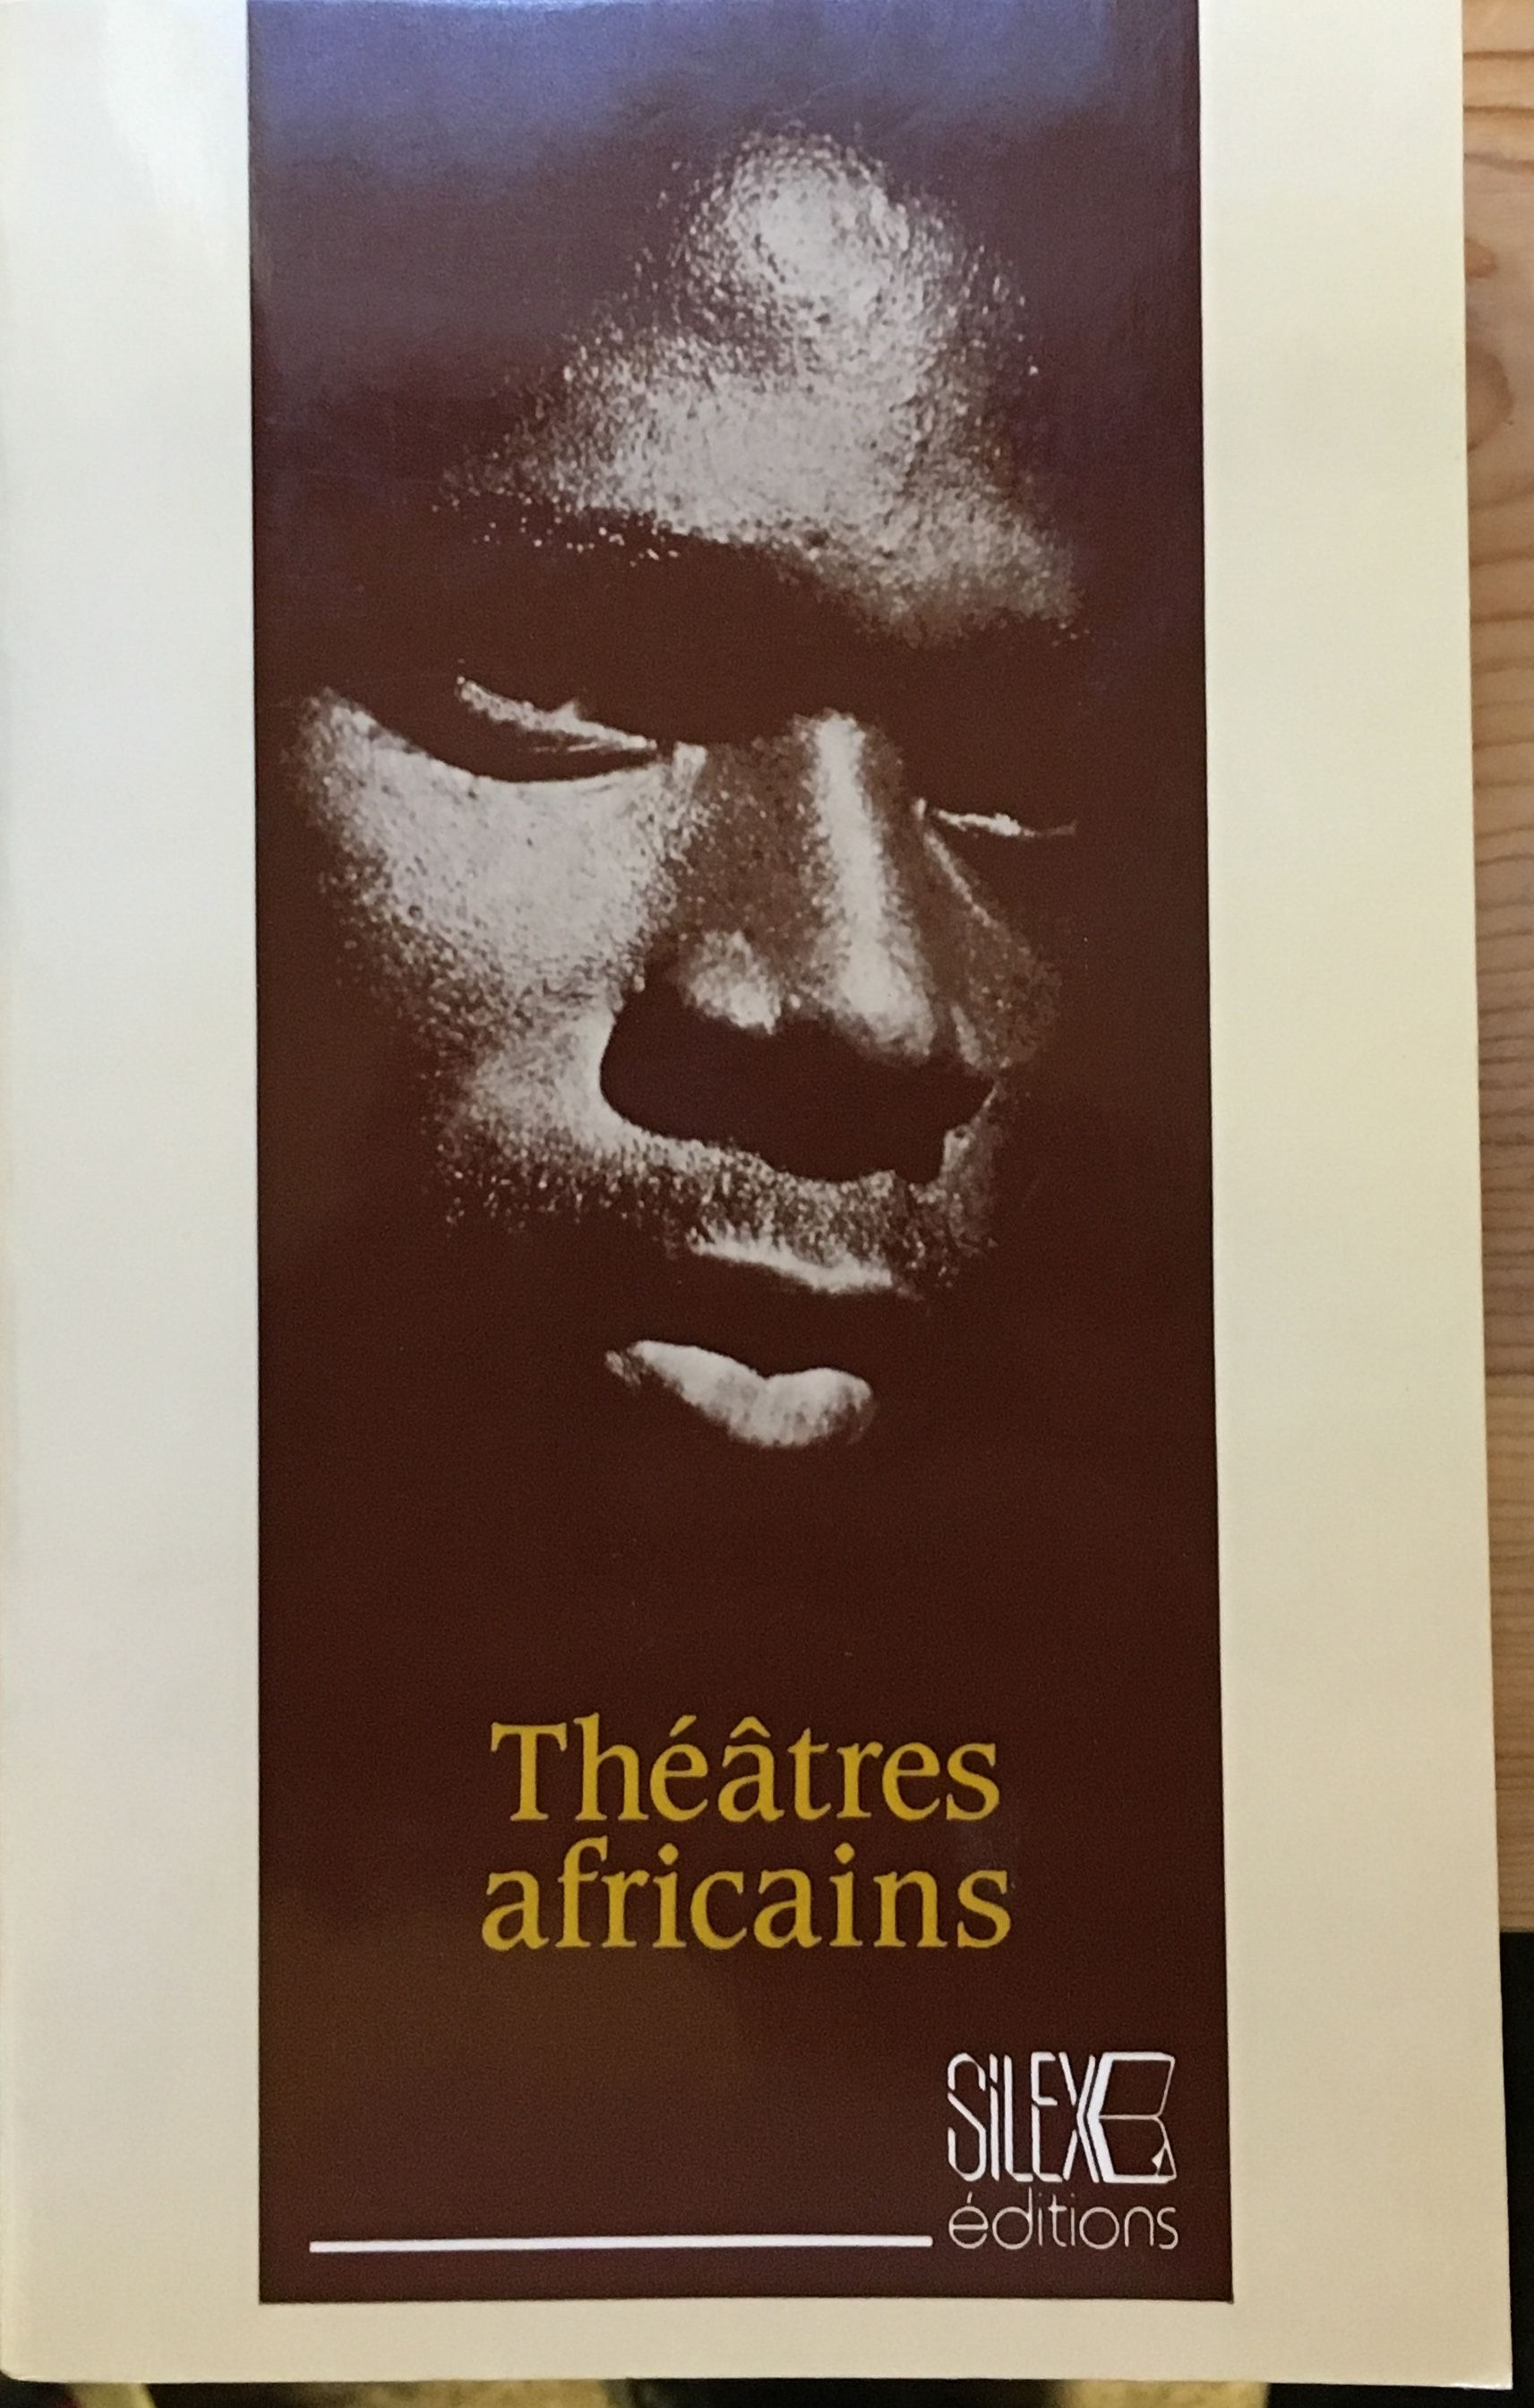 Image for The?a?tre africain, the?a?tres africains?: Actes du colloque sur le the?a?tre africain, Ecole normale supe?rieure, Bamako, 14-18 novembre 1988 (French Edition)